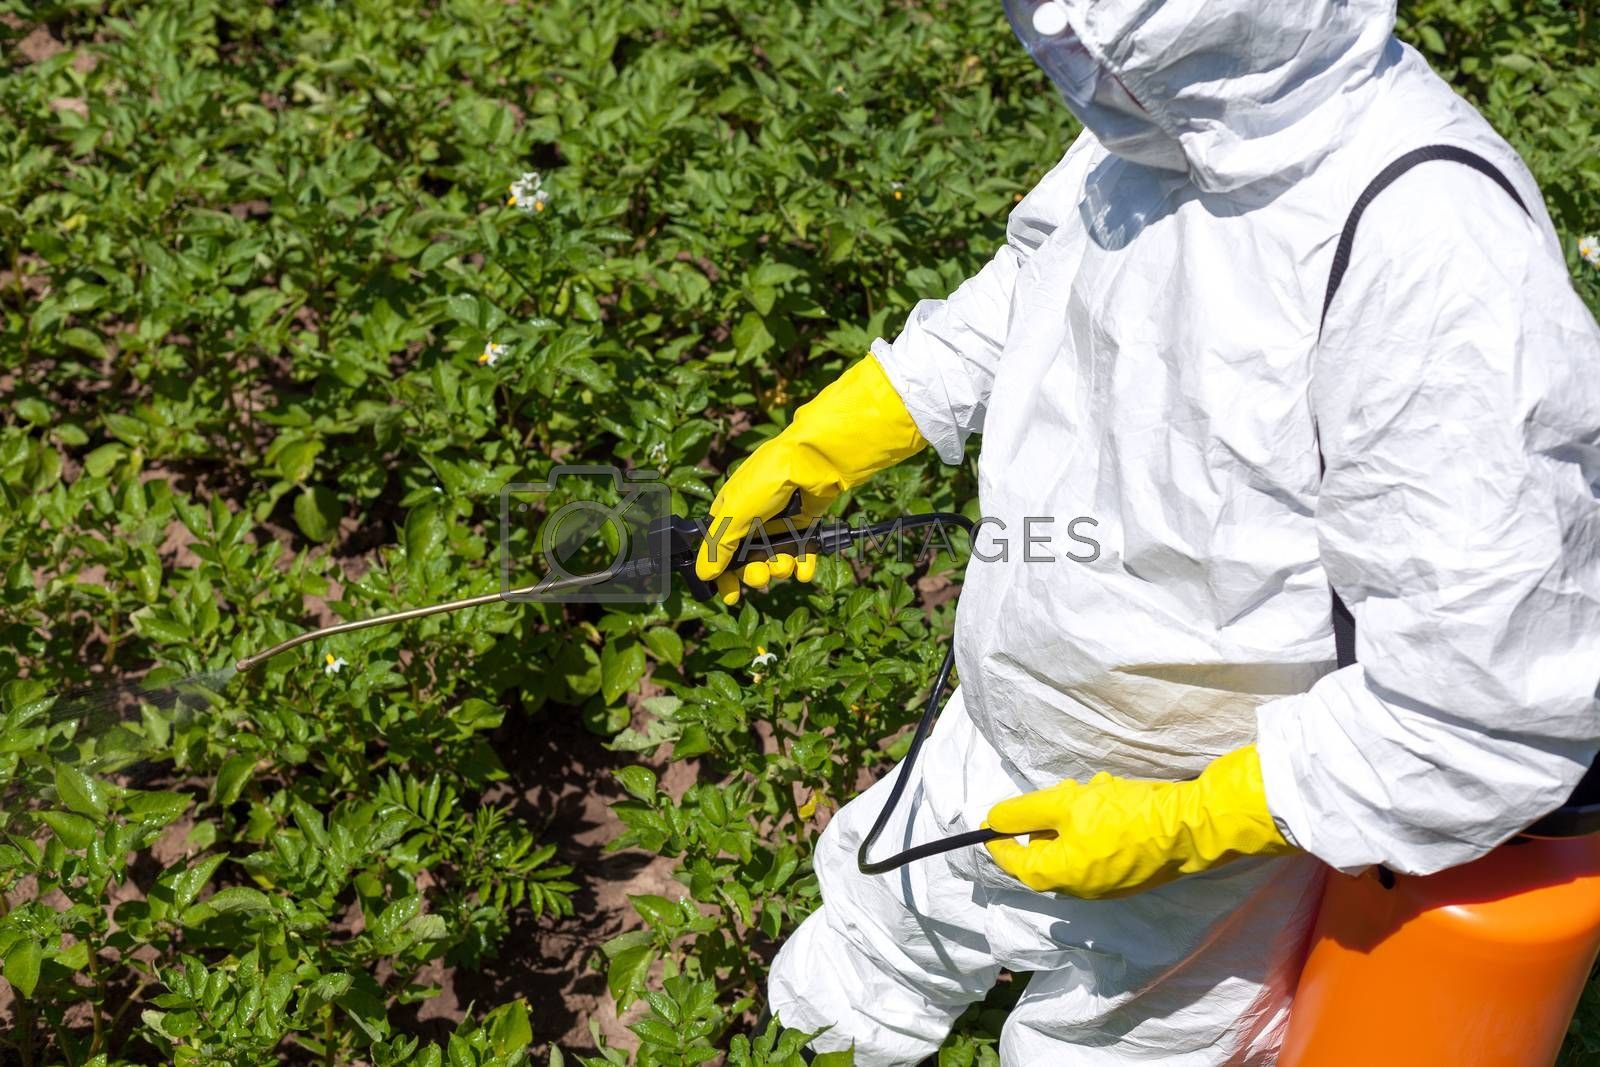 Man spraying toxic pesticides or insecticides in the vegetable garden